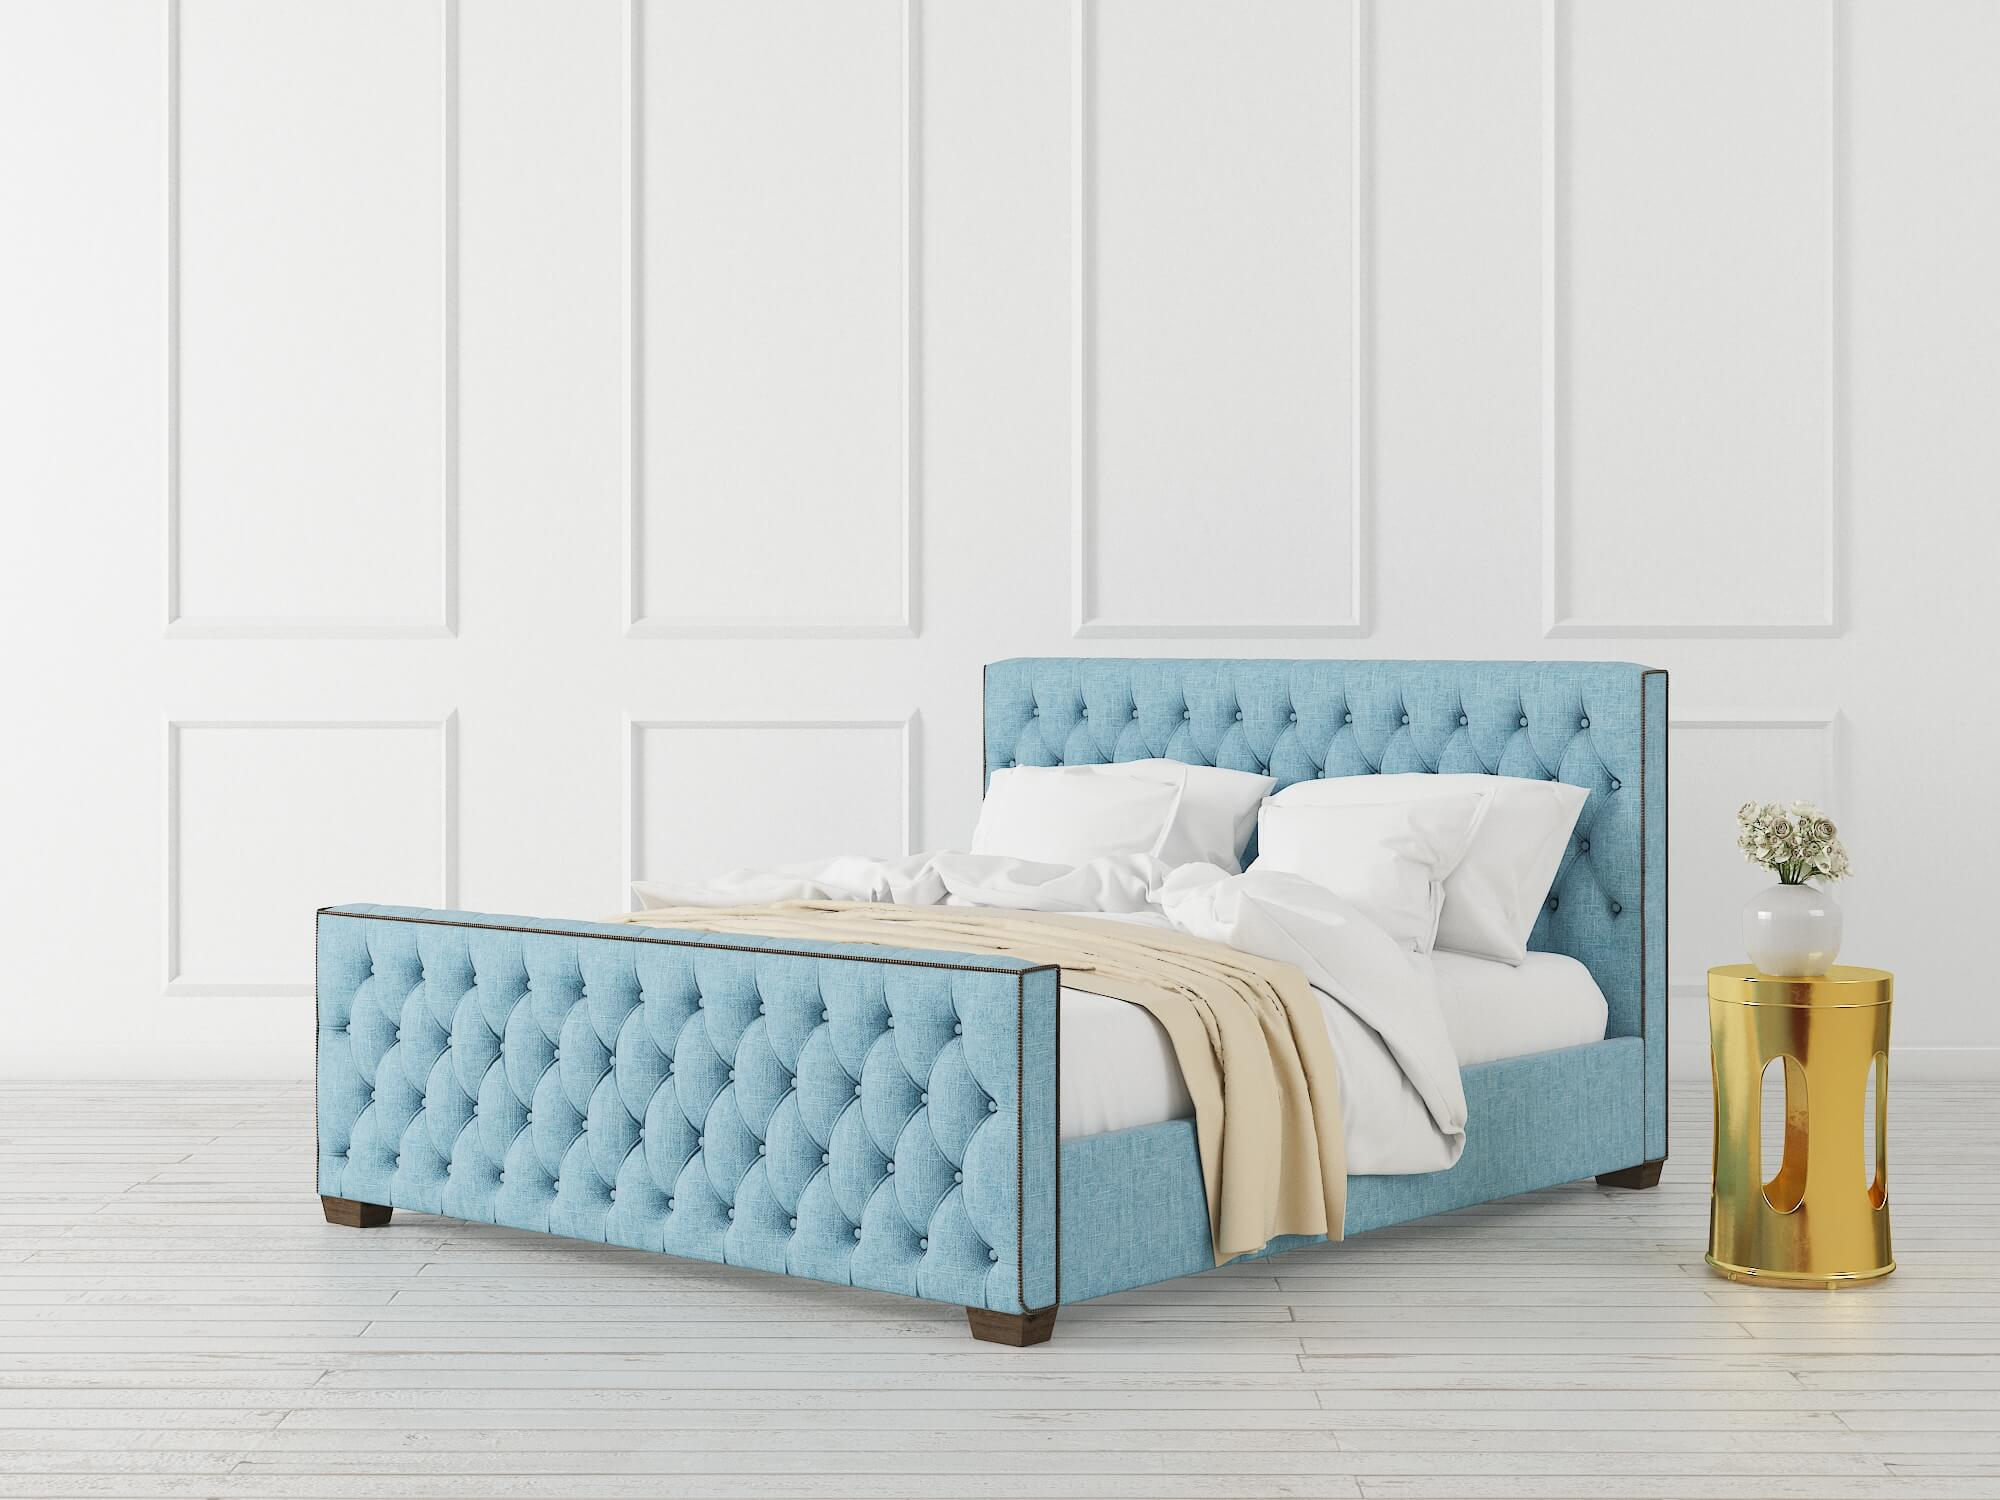 Aida Bed King Room Background